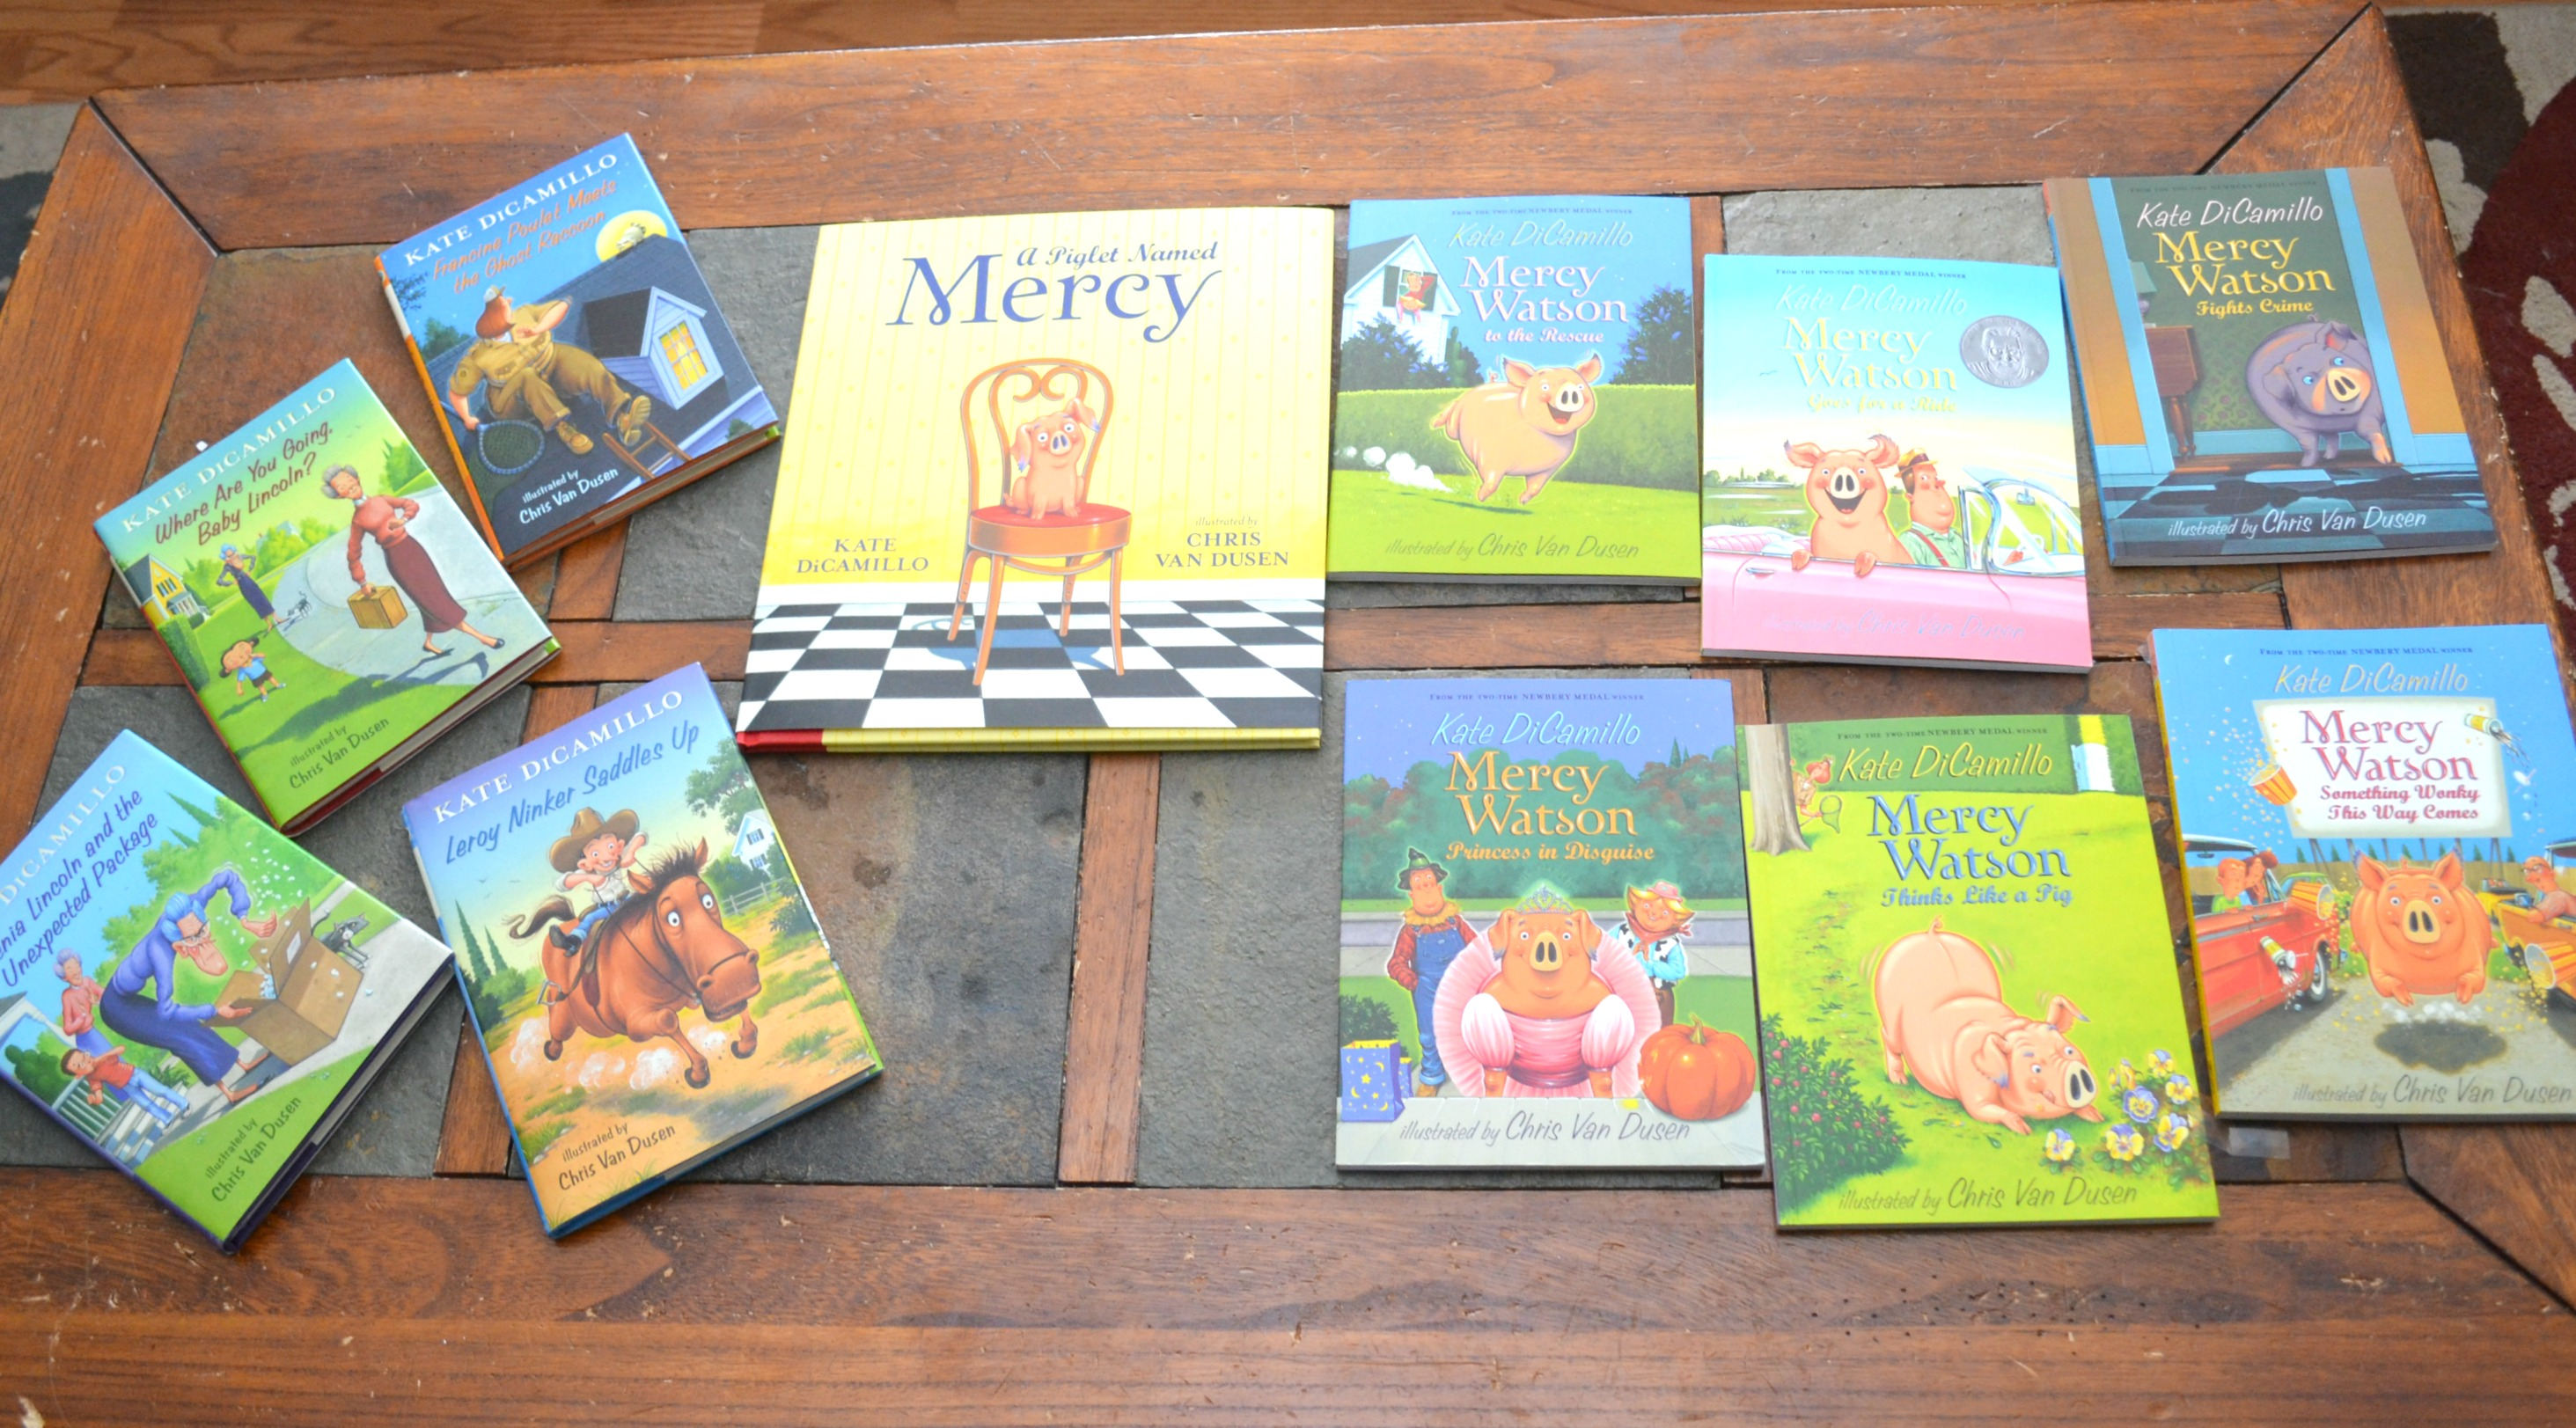 A Piglet Named Mercy by Kate DiCamillo, Mercy Watson book review, Mercy Watson, Great books for new readers, fun books for kids, A piglet Named Mercy, The best books for Kindergarten, teaching kids to love reading